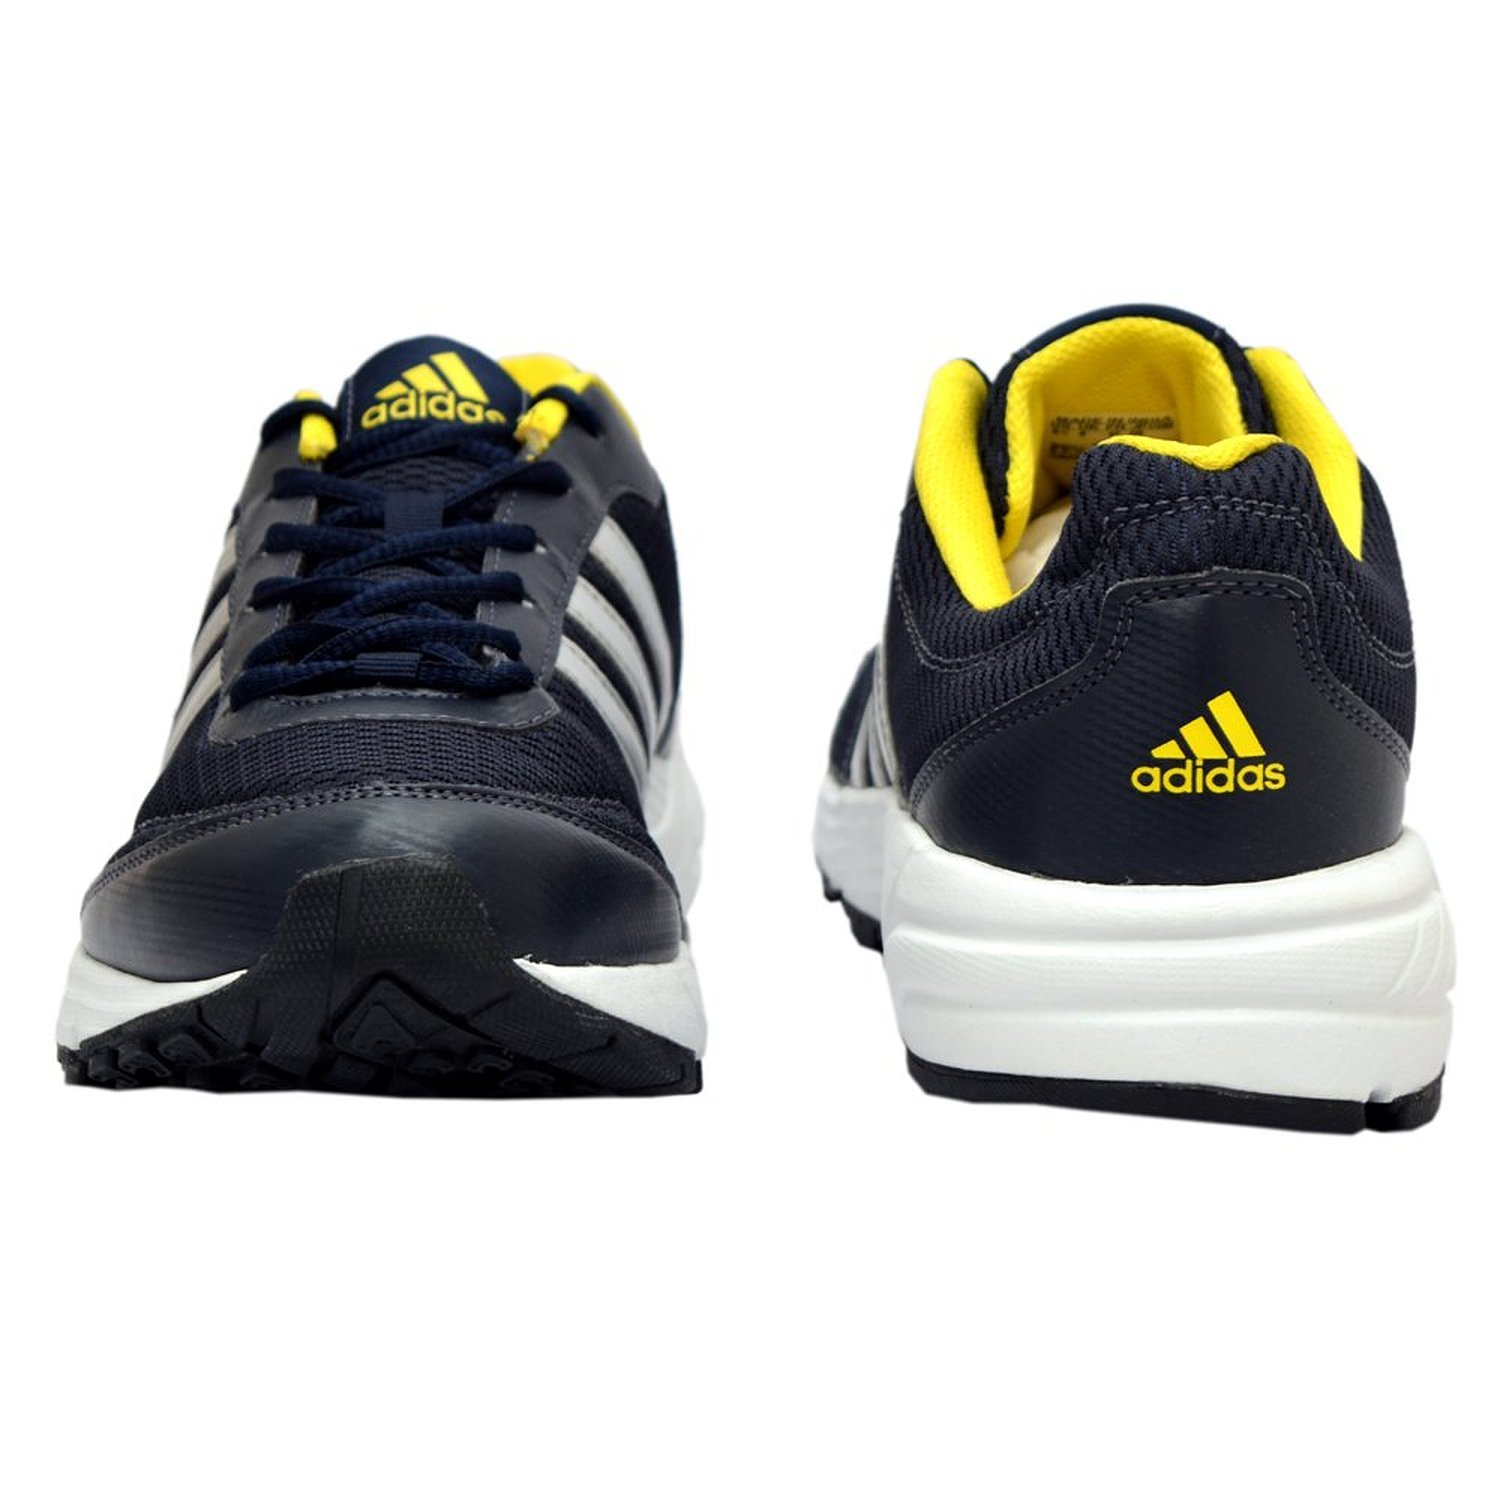 adidas Men's Phantom M Dark Blue and Yellow Mesh Running Shoes - 6 UK: Buy  Online at Low Prices in India - Amazon.in